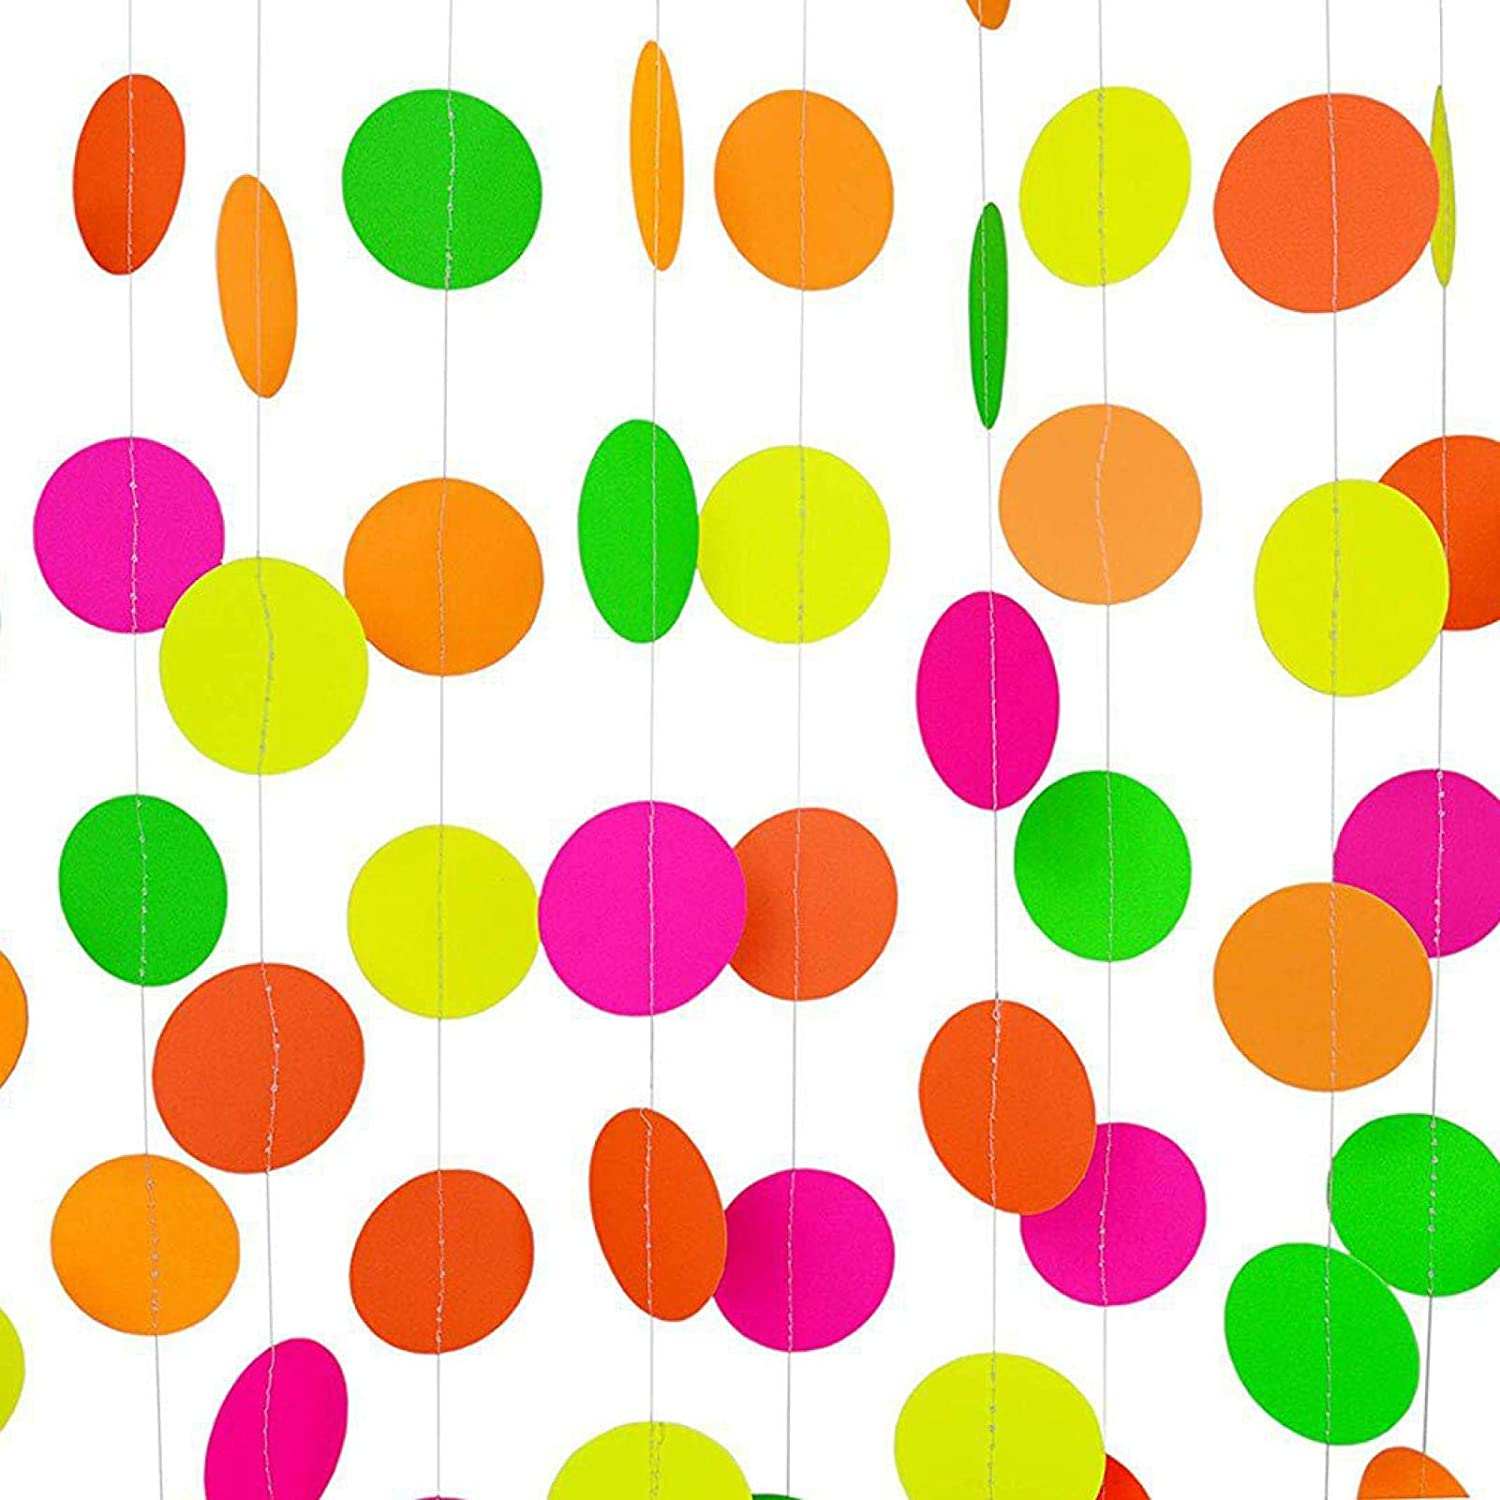 Hanging Decorations Glow in The Dark CALIDAKA Black Light Neon Star Circle Dots Party Supply Tapes Banner Garden Halloween